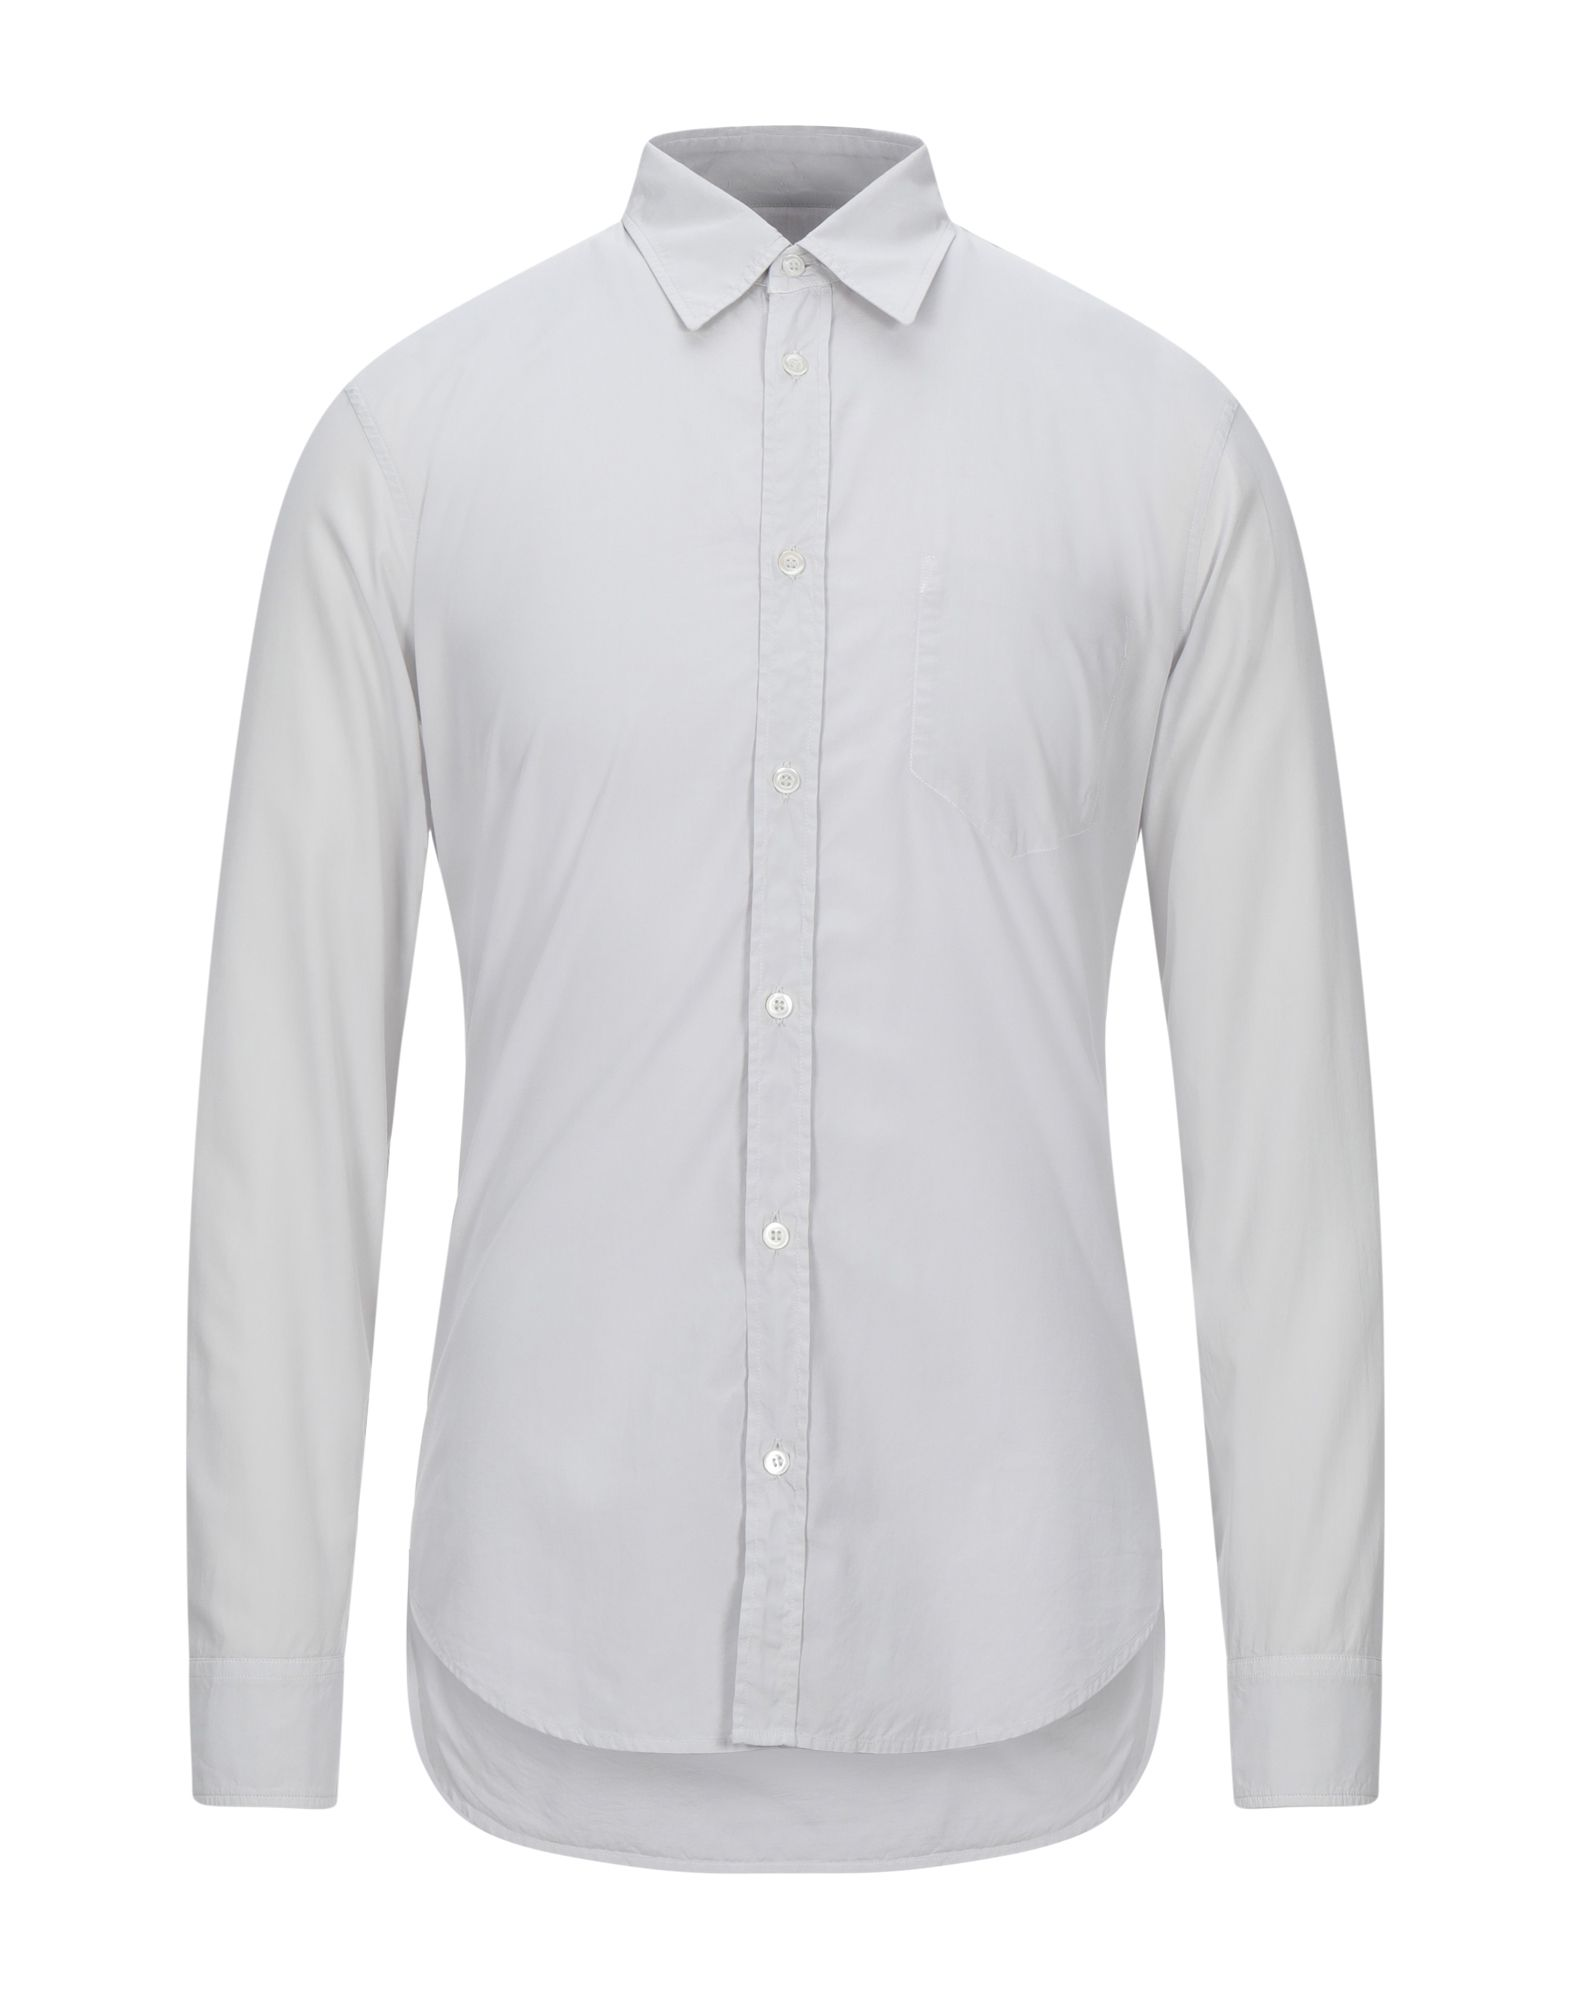 MAISON MARGIELA Shirts. poplin, stitching, basic solid color, front closure, button closing, long sleeves, classic neckline, no pockets, contains non-textile parts of animal origin. 100% Cotton